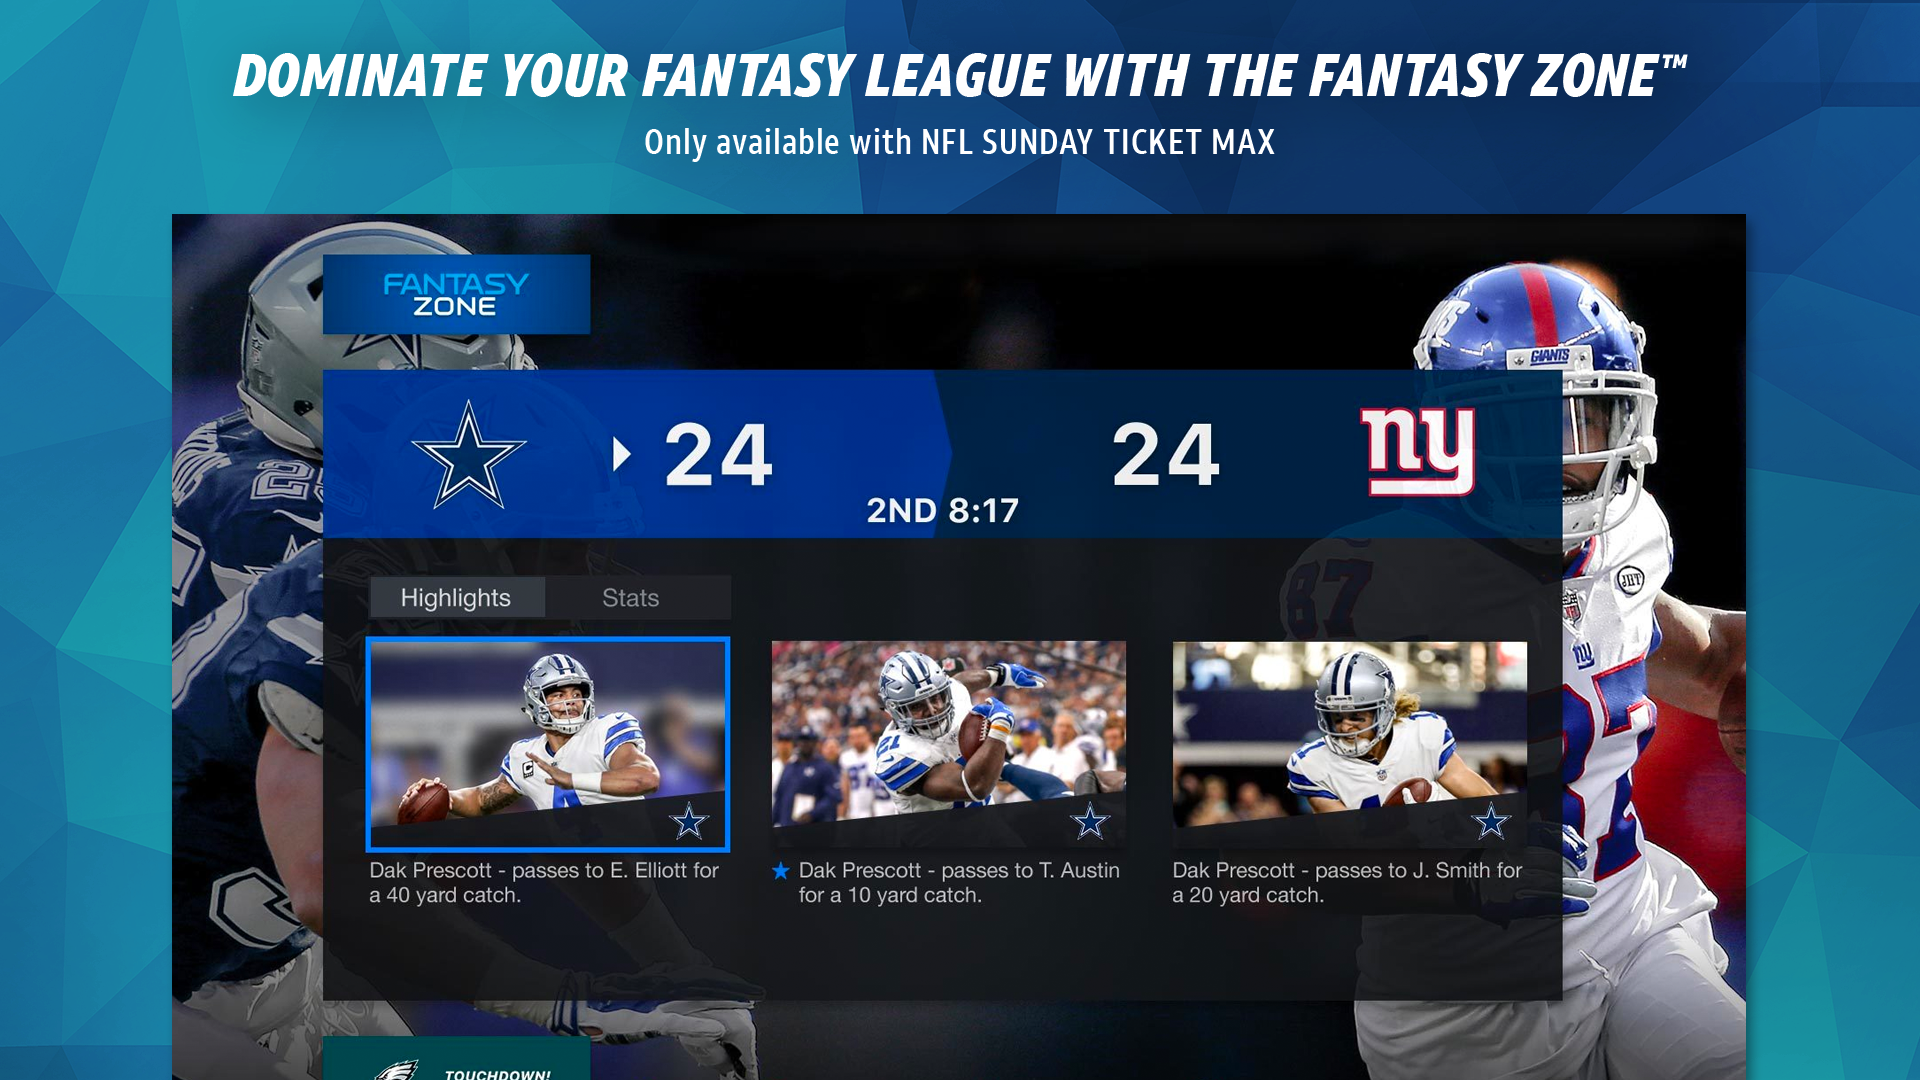 ae4e9e1ccf2 Amazon.com  NFL Sunday Ticket  Appstore for Android